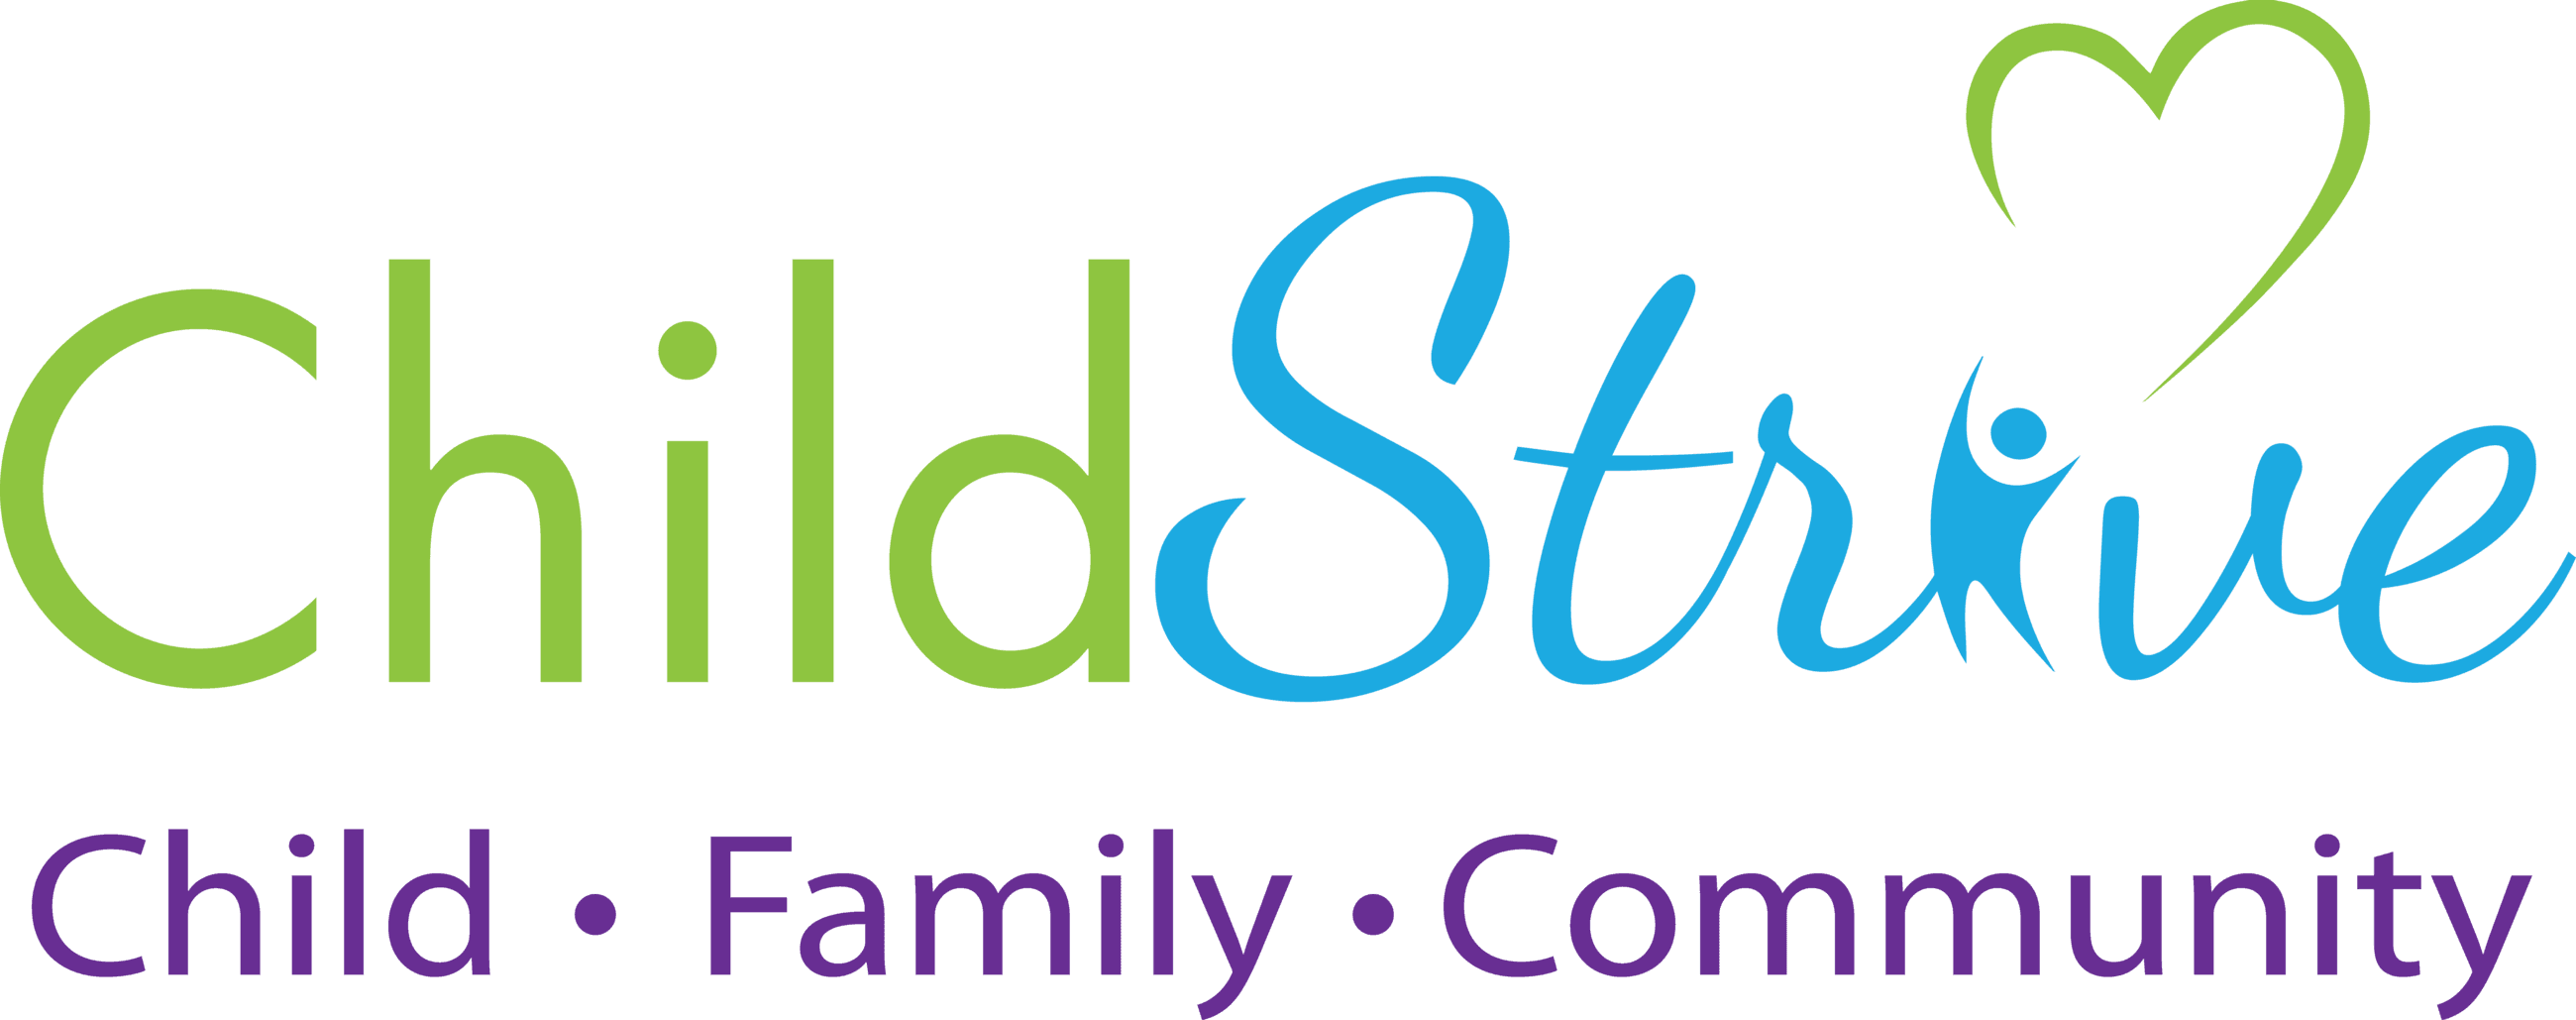 ChildStrive Logo Child, Family, Community